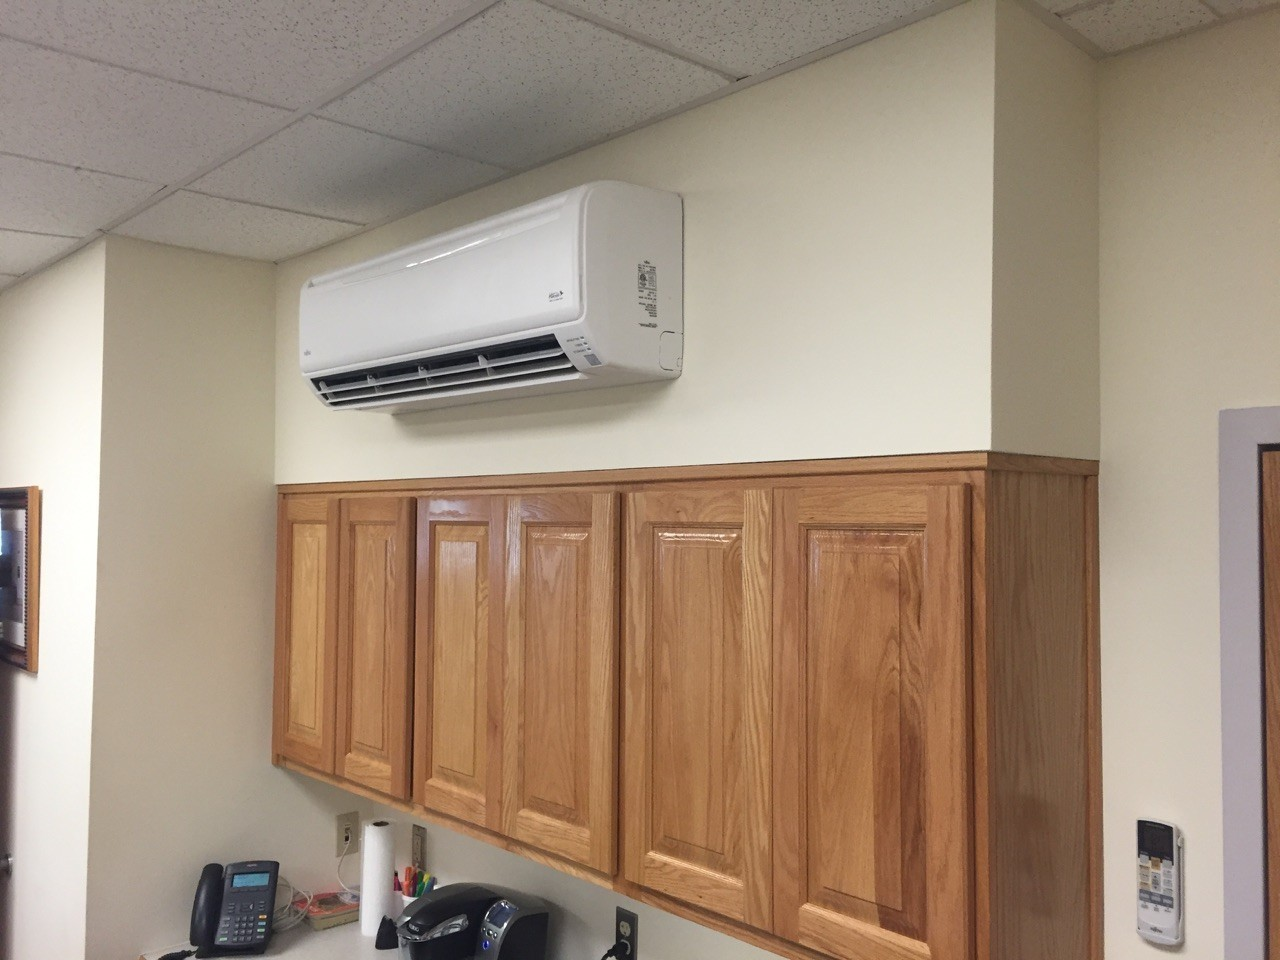 reviews - Ductless Air System